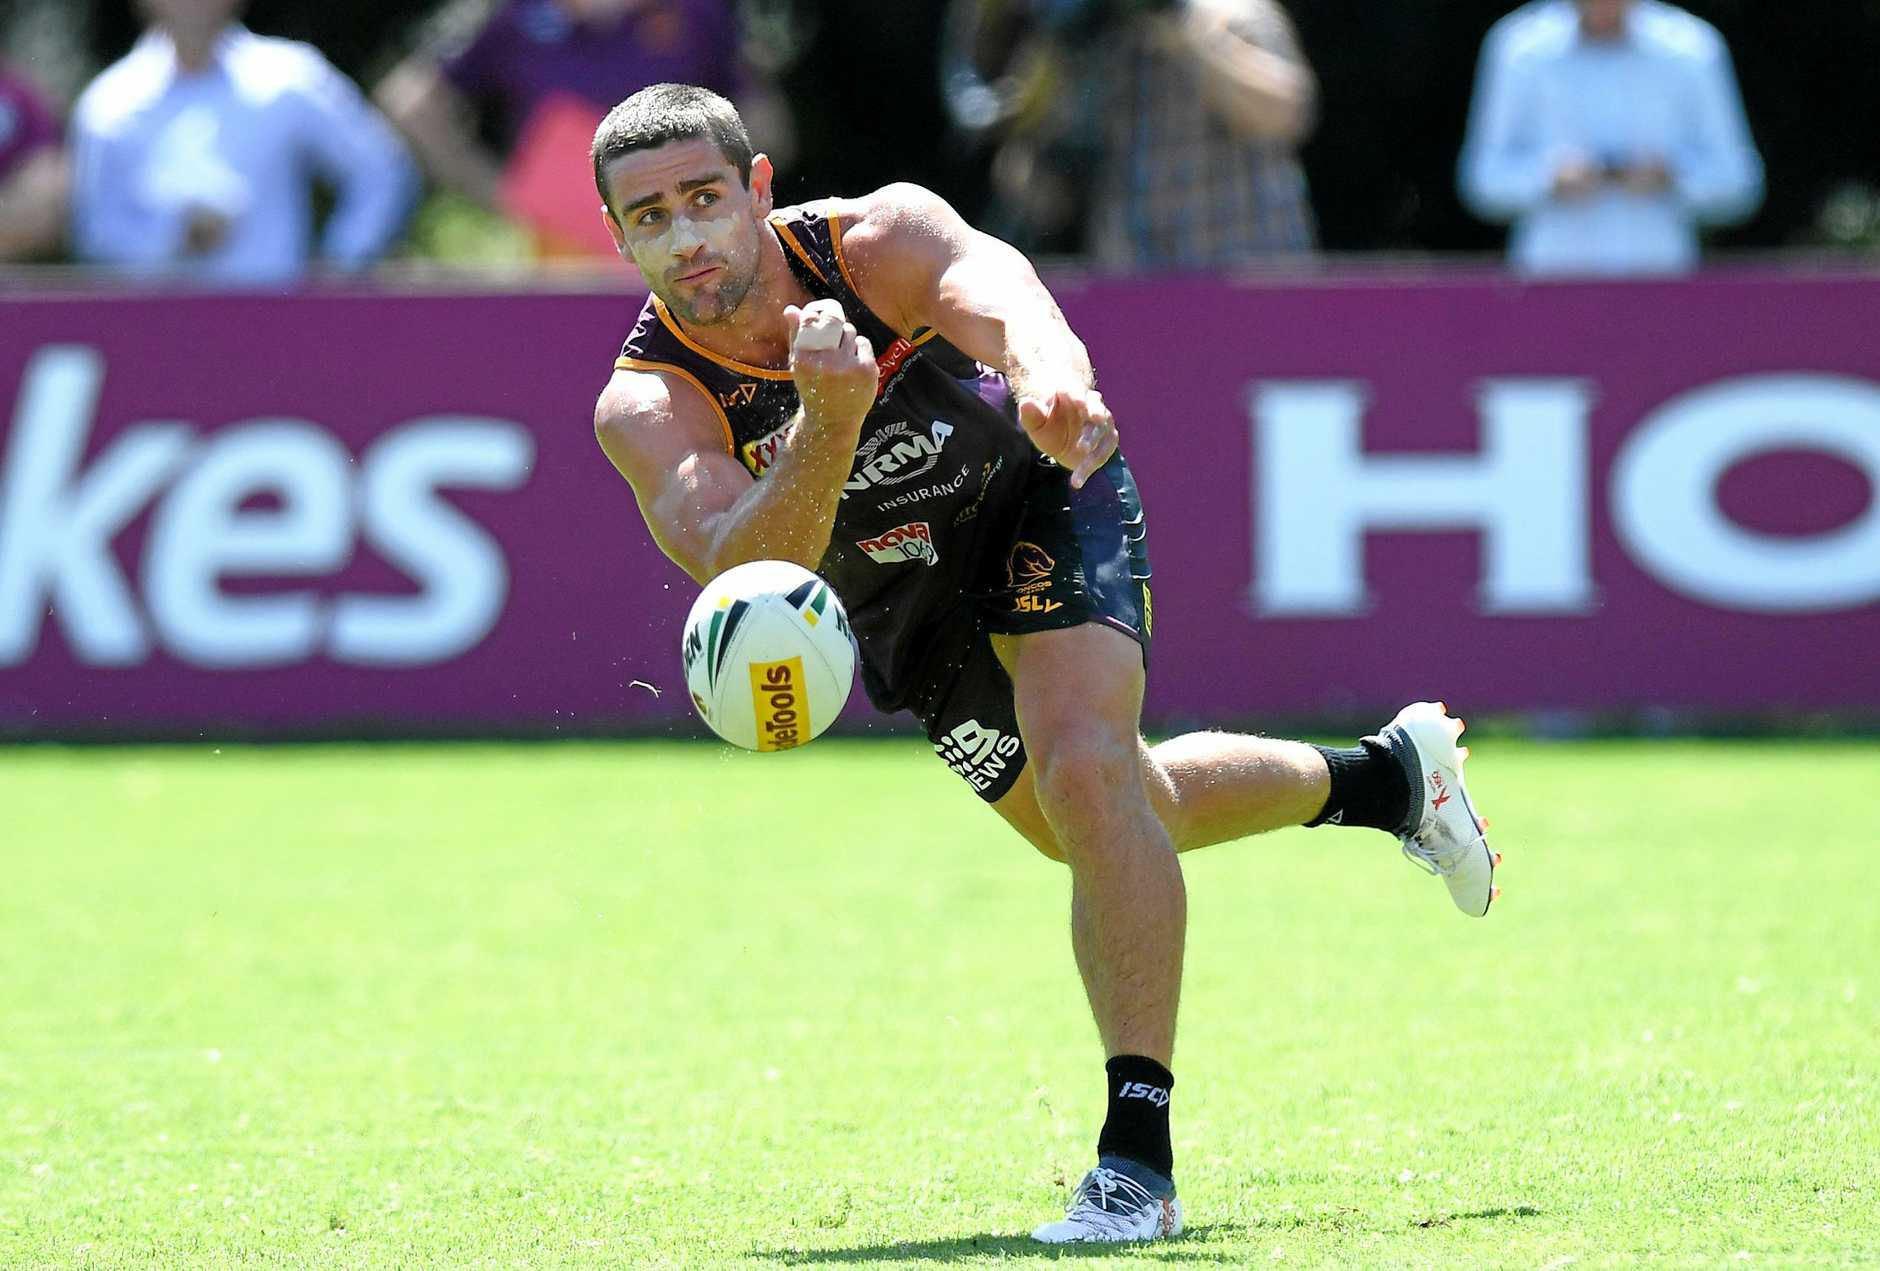 BRISBANE, AUSTRALIA - FEBRUARY 12: Andrew McCullough passes the ball during a Brisbane Broncos NRL training session at Red Hill on February 12, 2019 in Brisbane, Australia. (Photo by Bradley Kanaris/Getty Images)